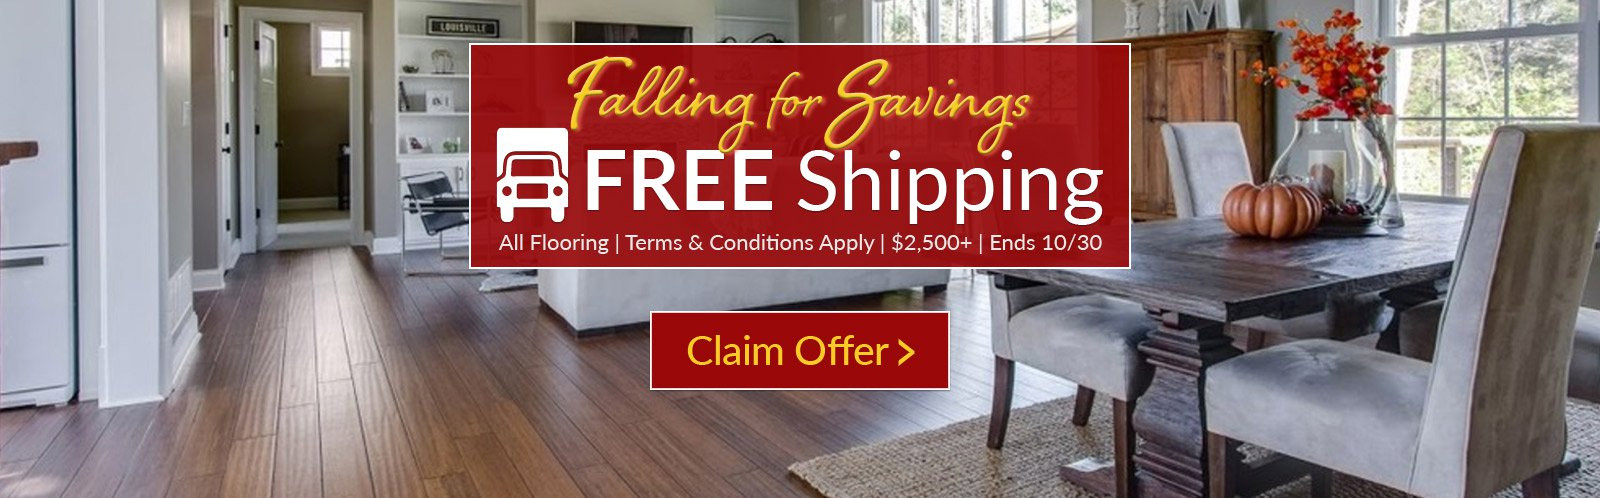 hardwood flooring stores san jose of green building construction materials and home decor cali bamboo pertaining to your shopping cart is empty